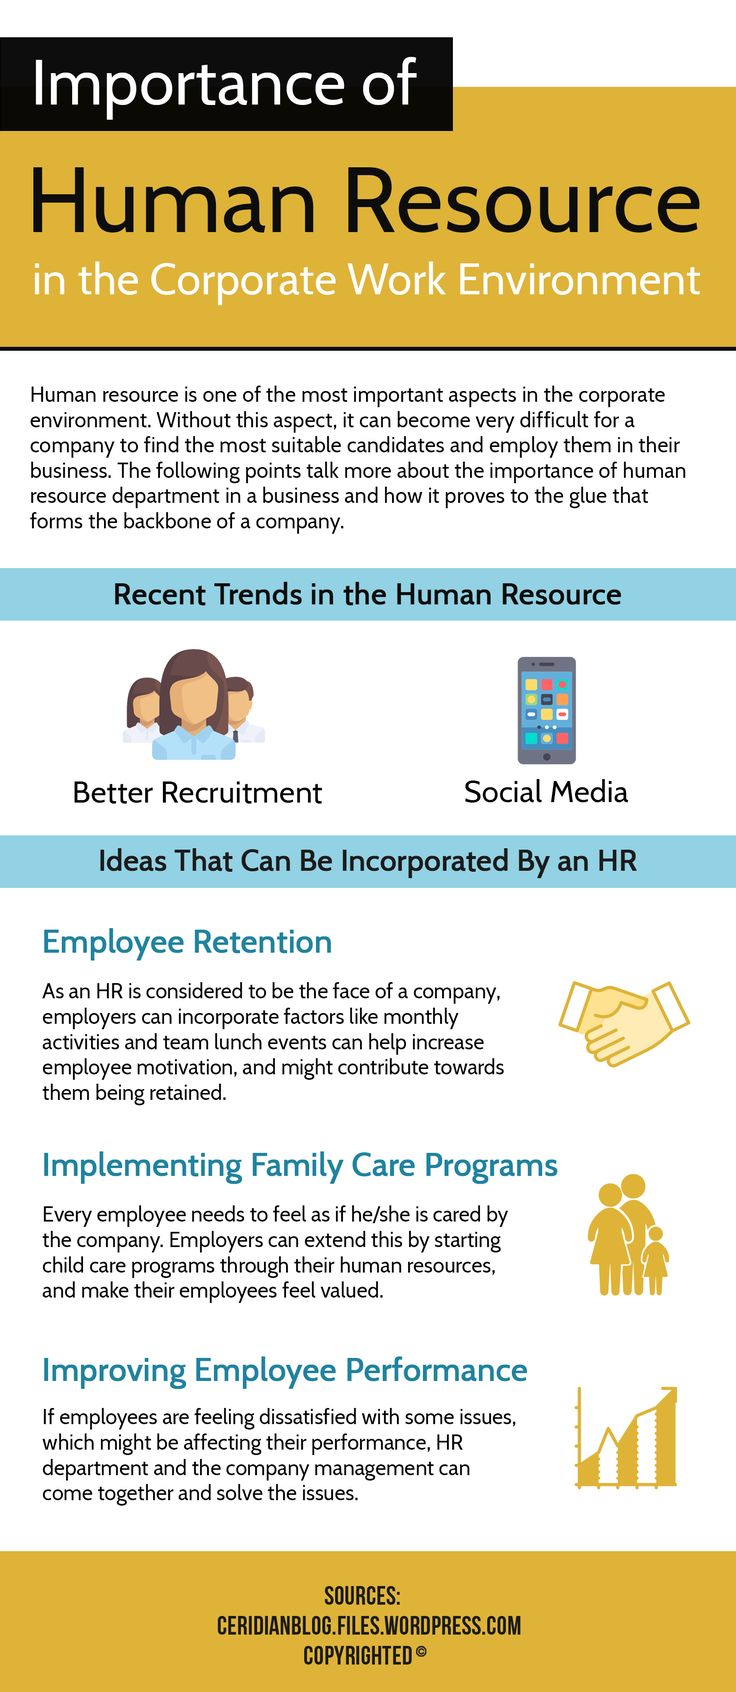 importance of hr feedback Key benefits of effective feedback posted on august 21st | by: janet hoffmann | comments 0 providing effective feedback to our team offers great benefits many times we loose site of how impactful those benefits can be, however, when given at the right time in a respectful, positive and constructive manner feedback is the key to.